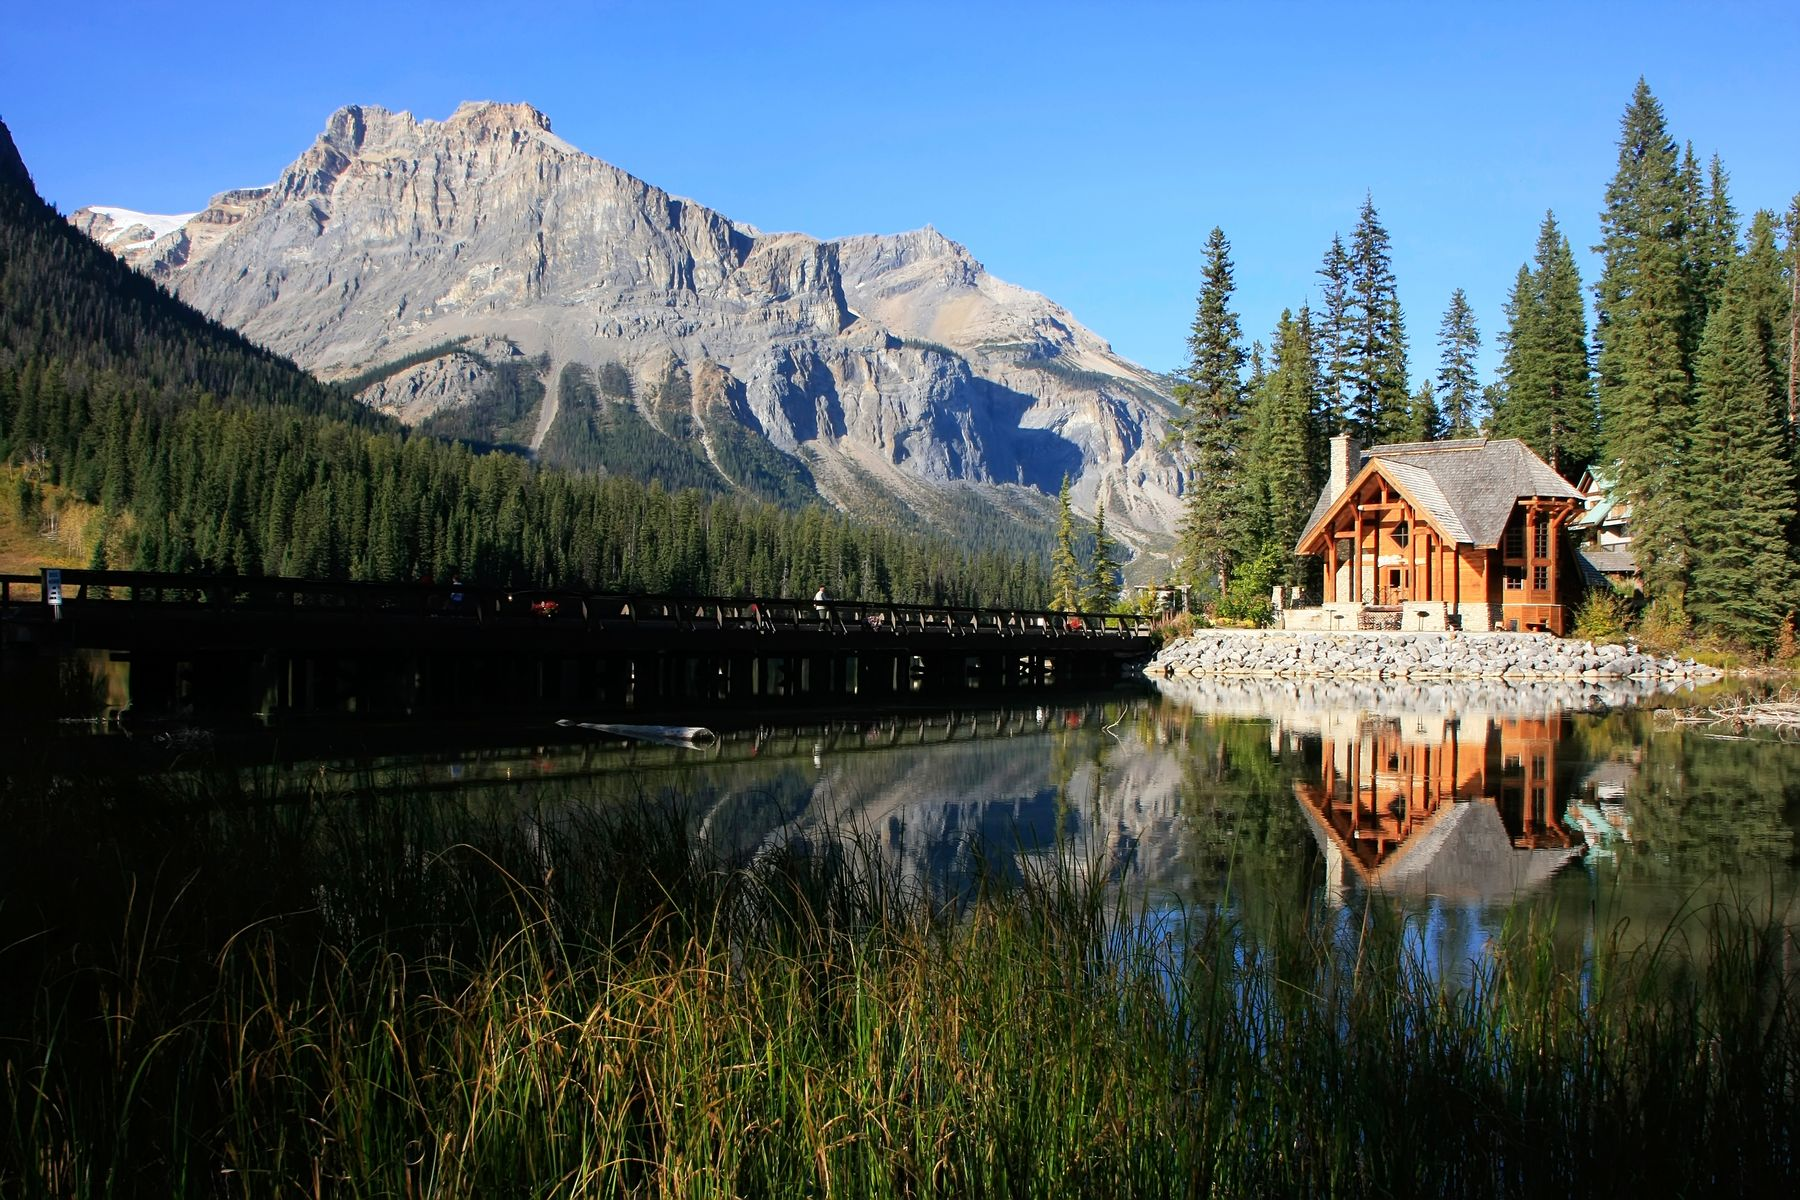 cabin in the woods in Canada. Staycations have proven to be popular in 2020 and into 2021.